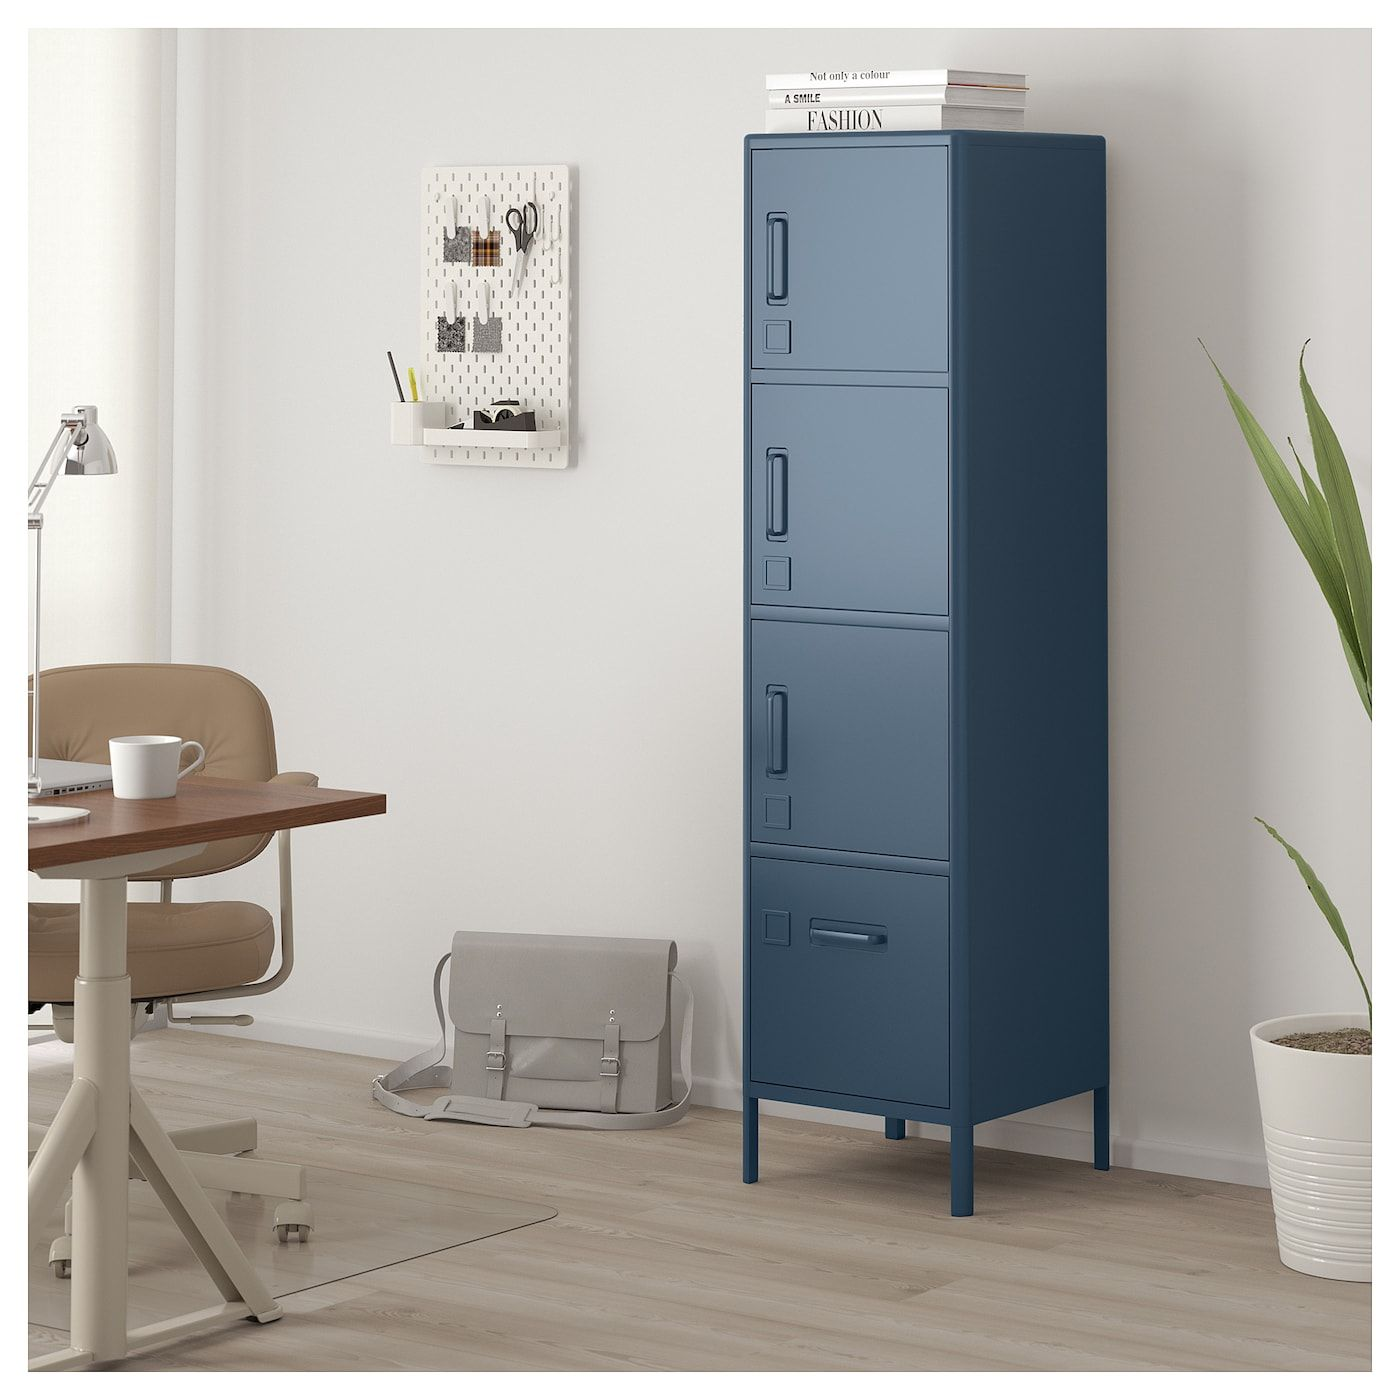 High with drawer and doors, blue, 17 3/4x67 3/4